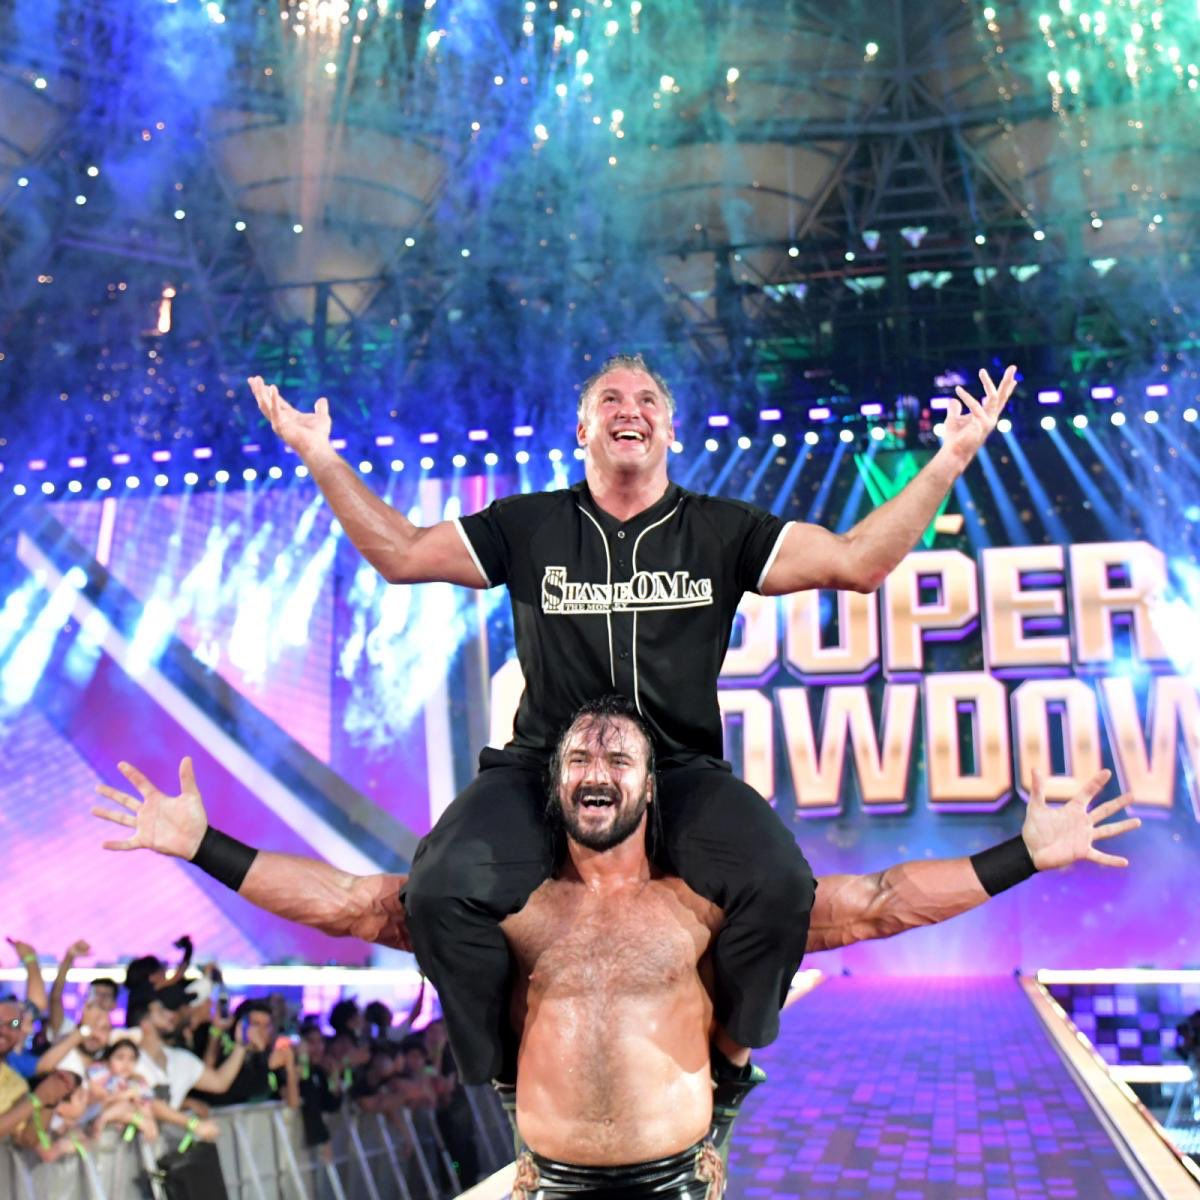 Best In The World! What else can I say? #WWESSD